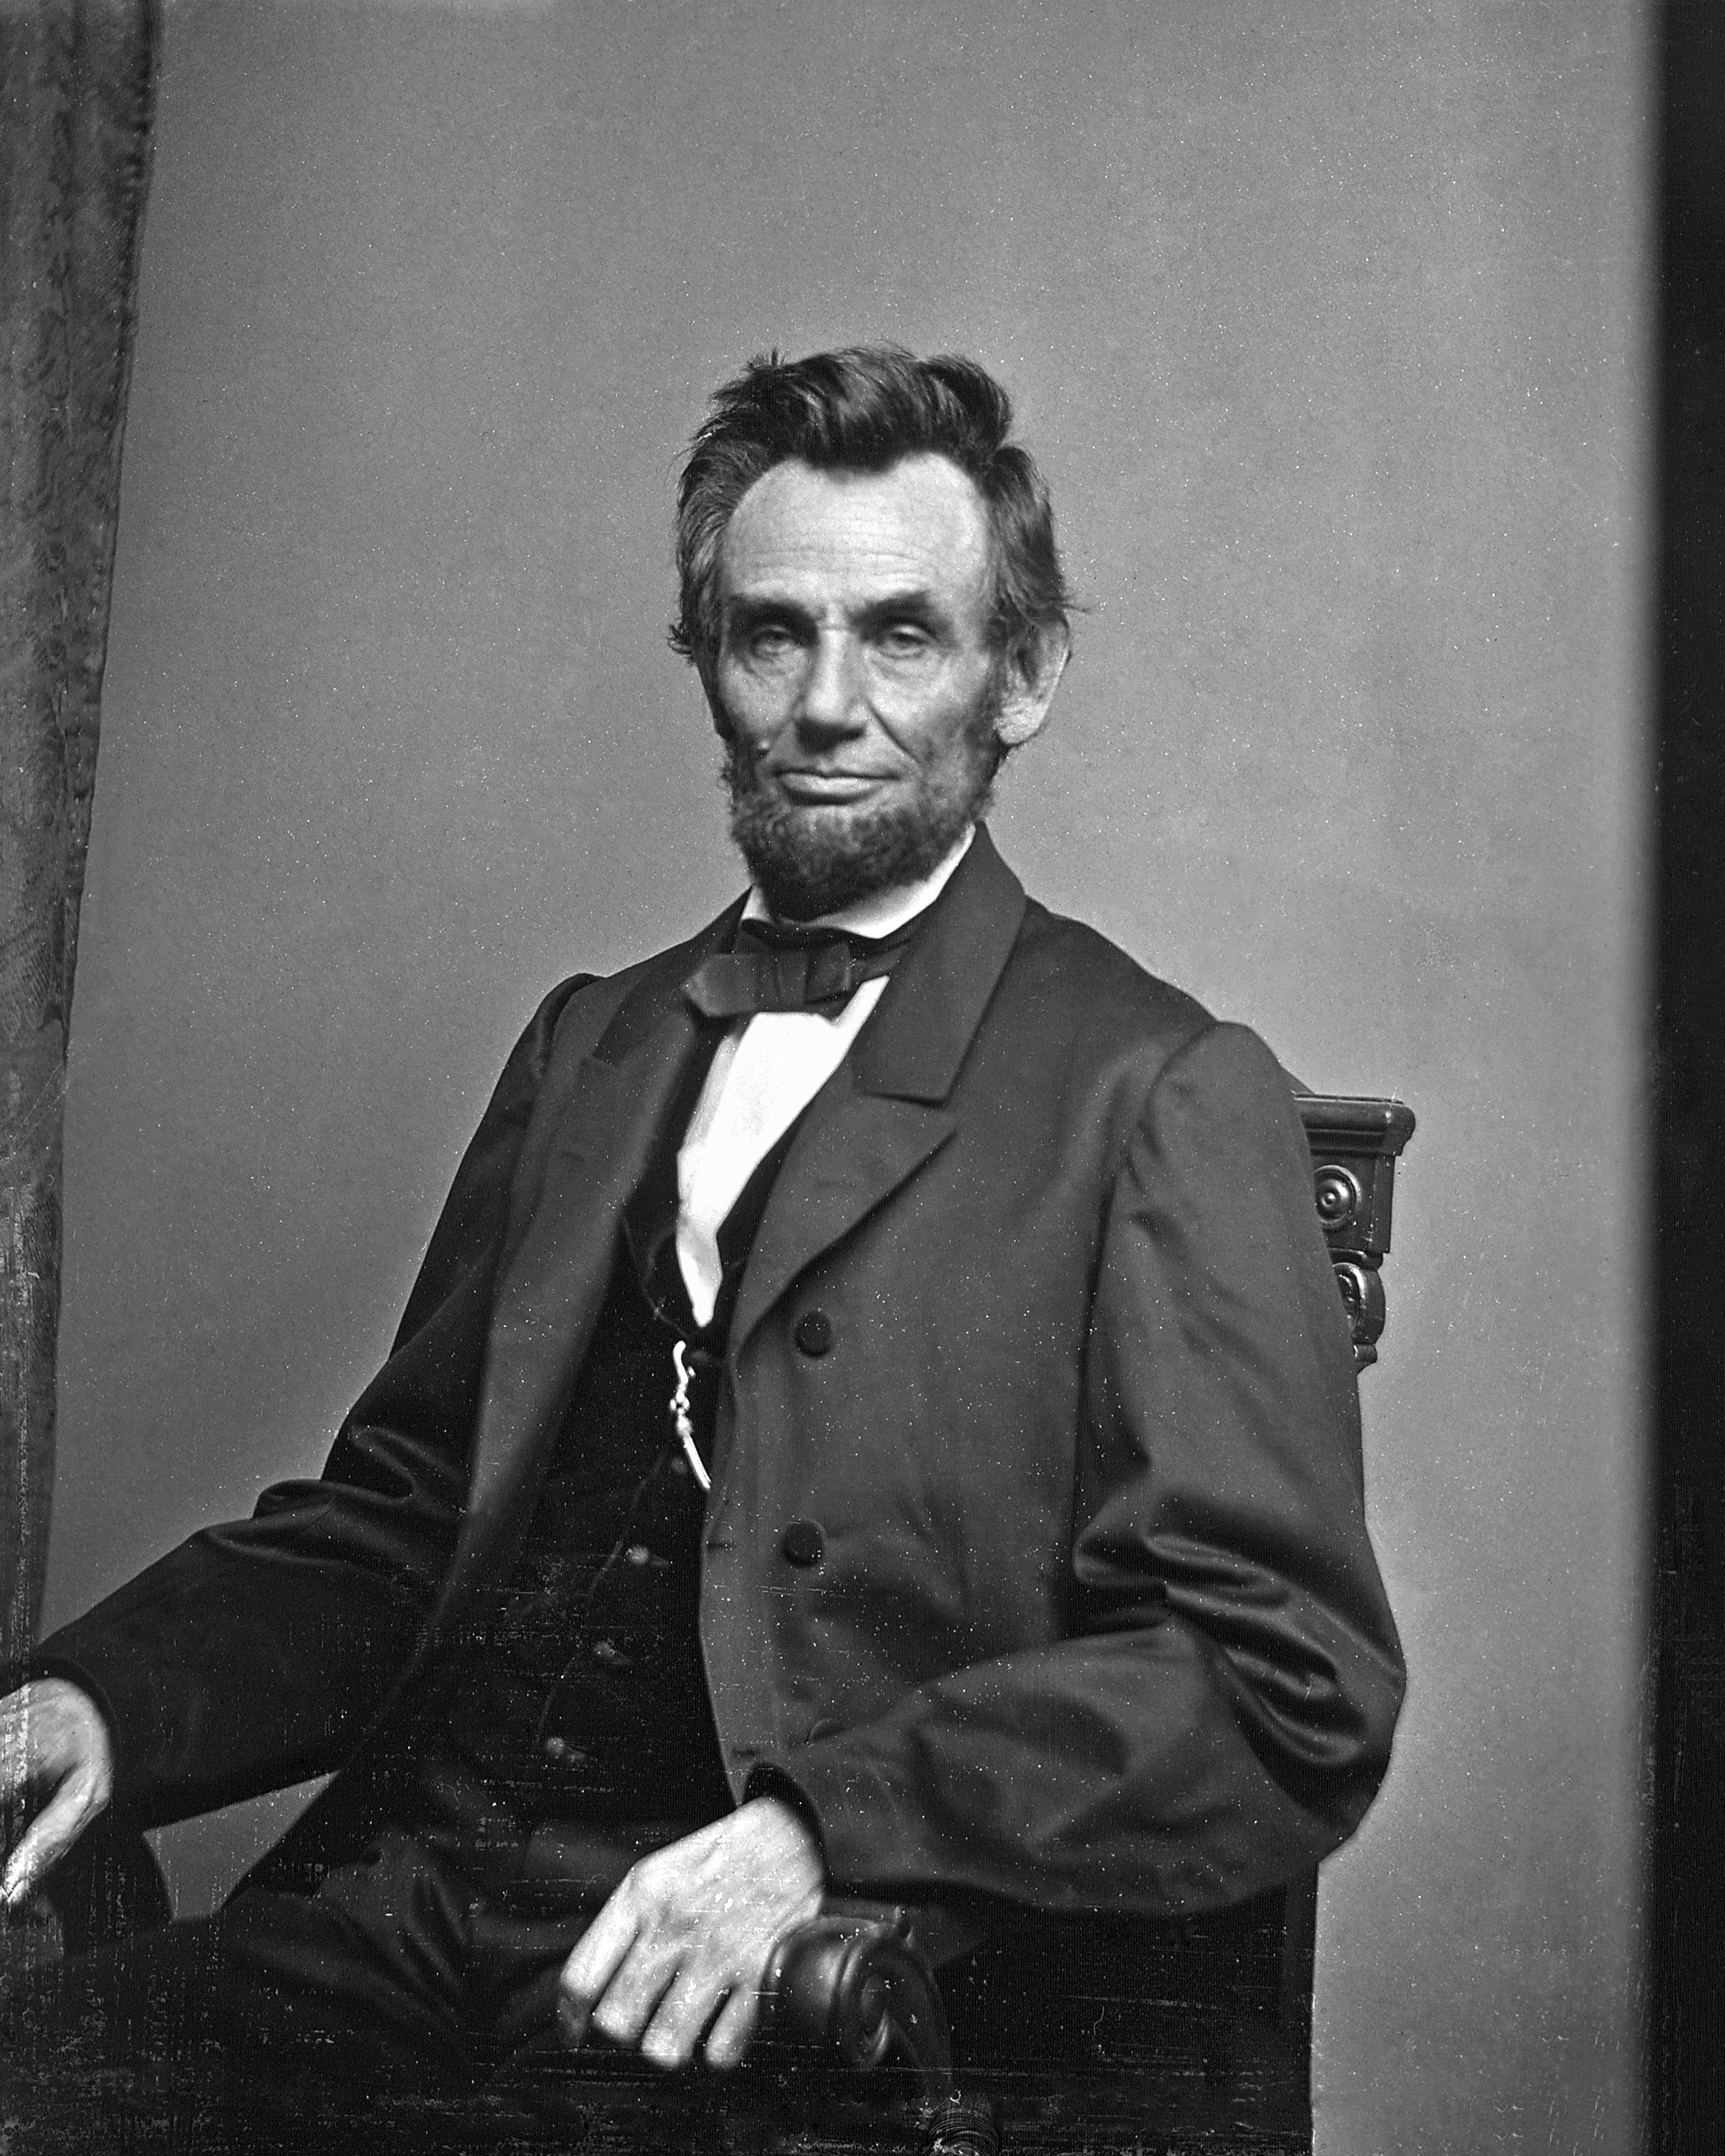 File:Abraham Lincoln O-84 by Brady, 1864.jpg - Wikimedia Commons